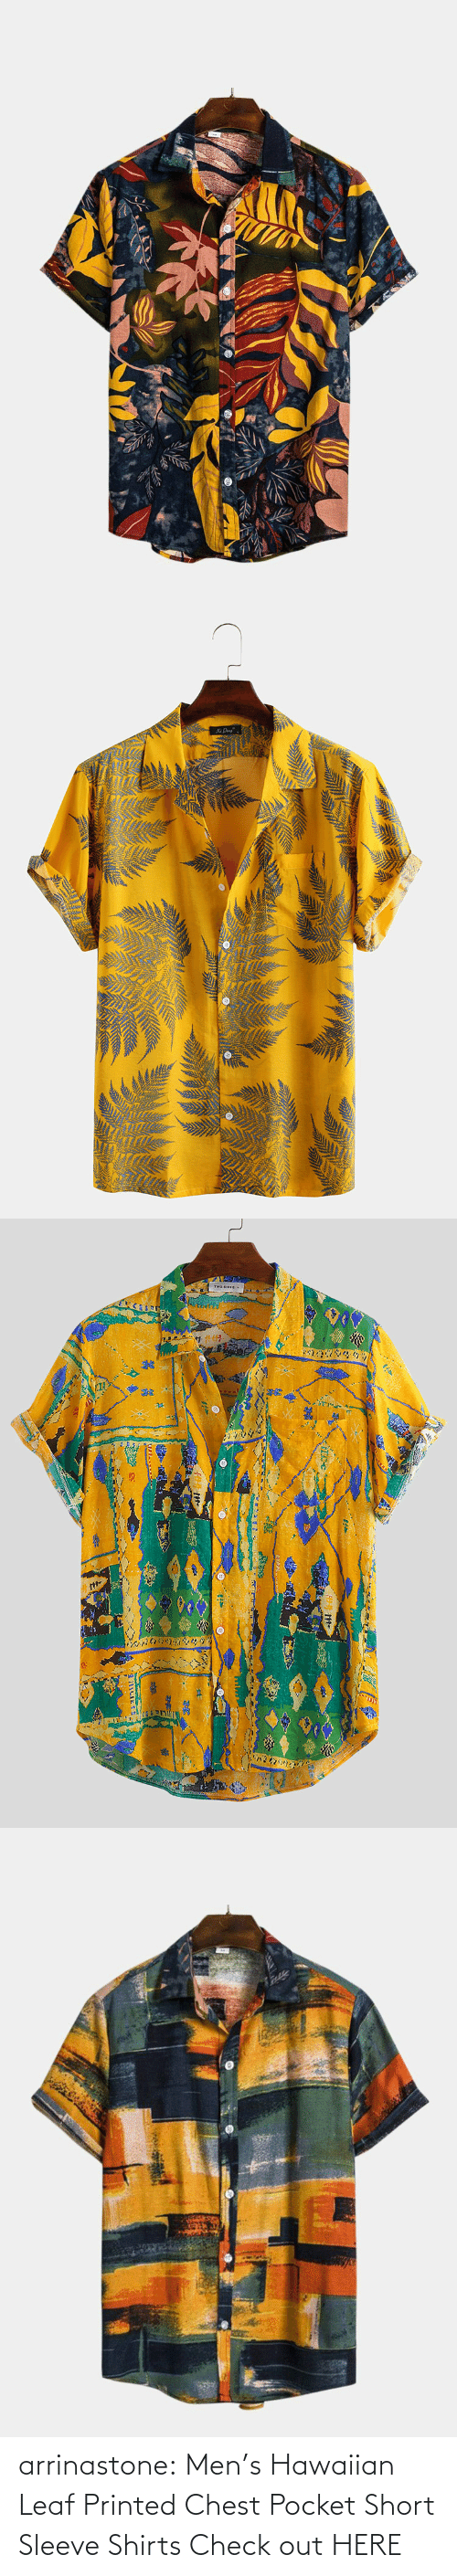 Mens: arrinastone: Men's Hawaiian Leaf Printed Chest Pocket Short Sleeve Shirts  Check out HERE